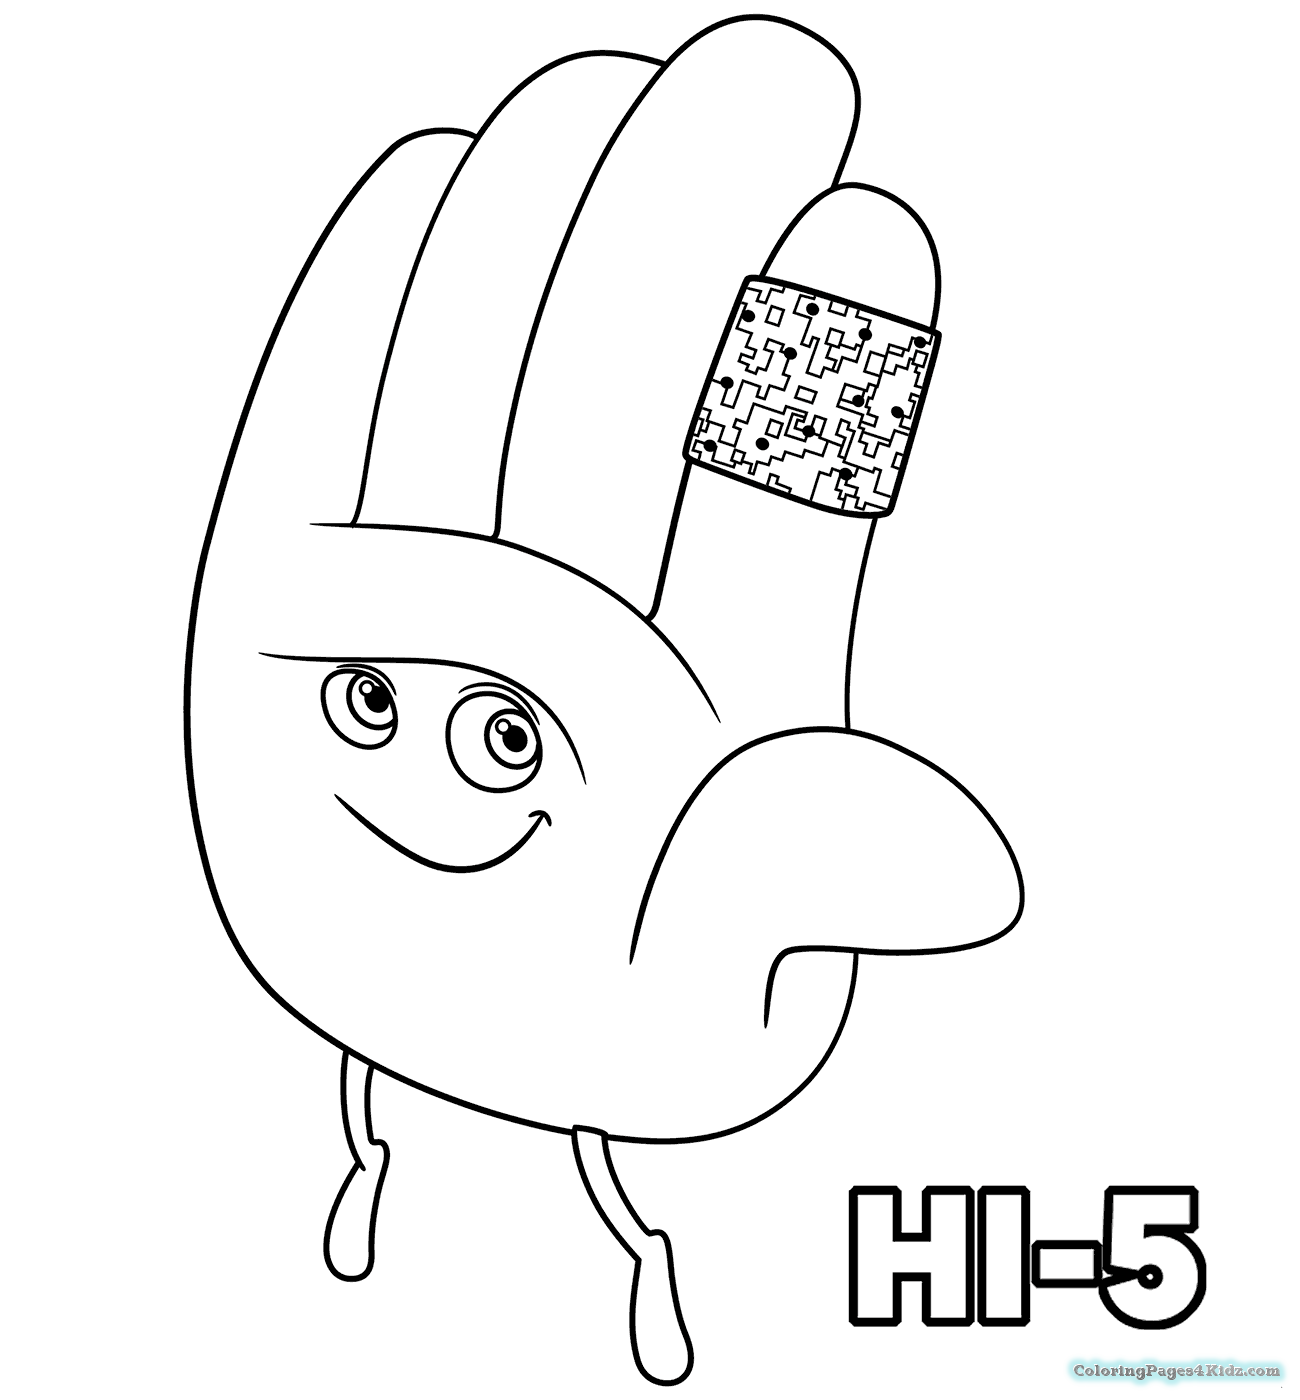 1300x1400 Emoji Coloring Pages All Coloring Pages For Kids